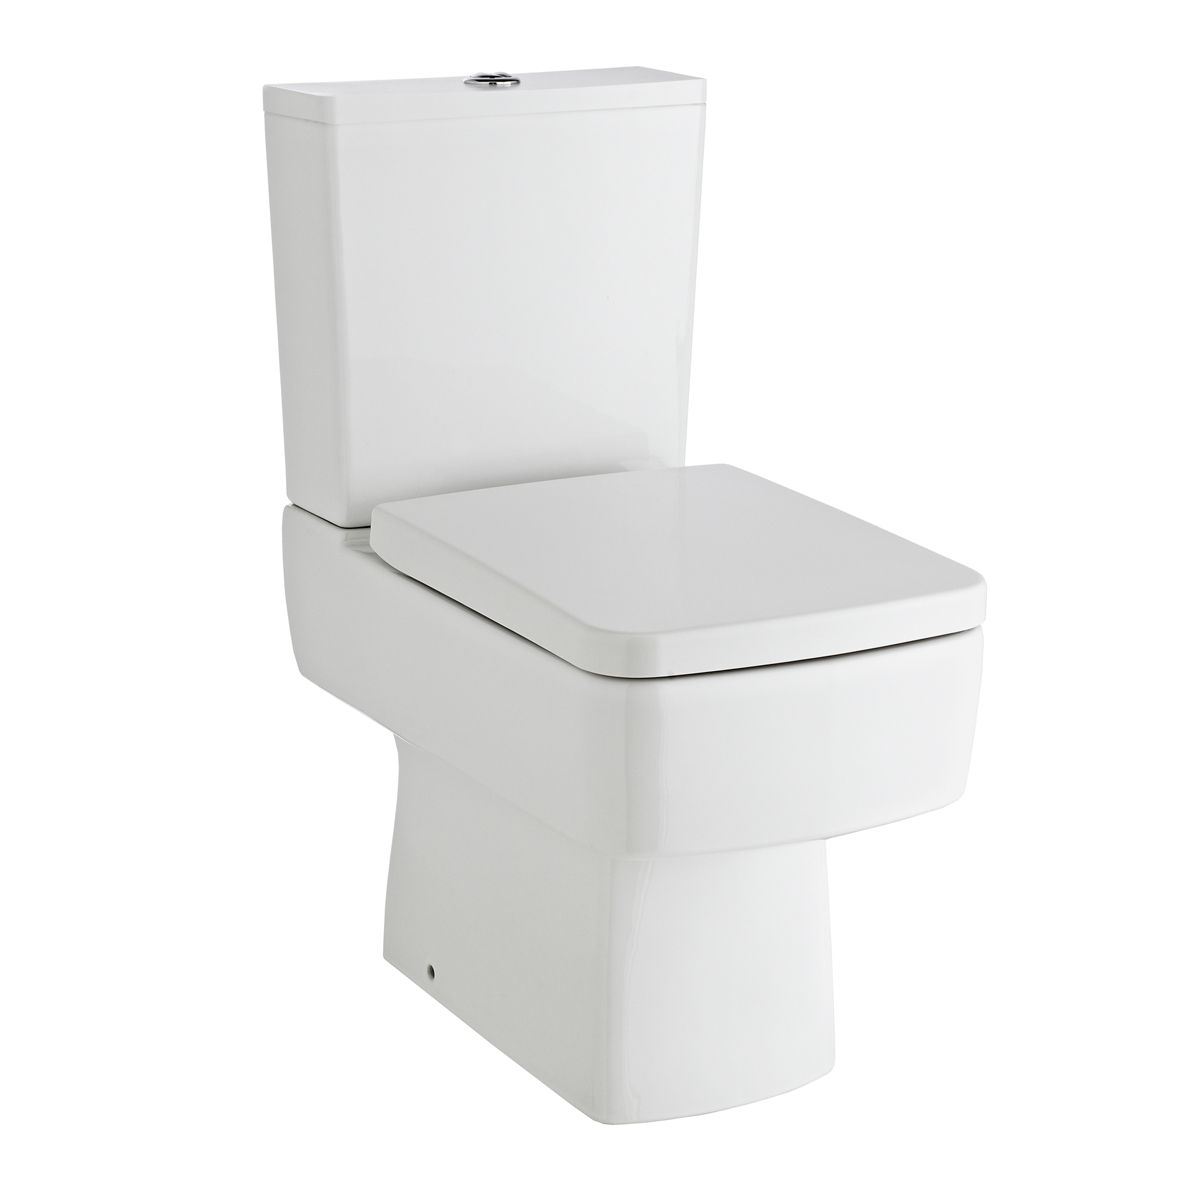 Premier Bliss Close Coupled Toilet